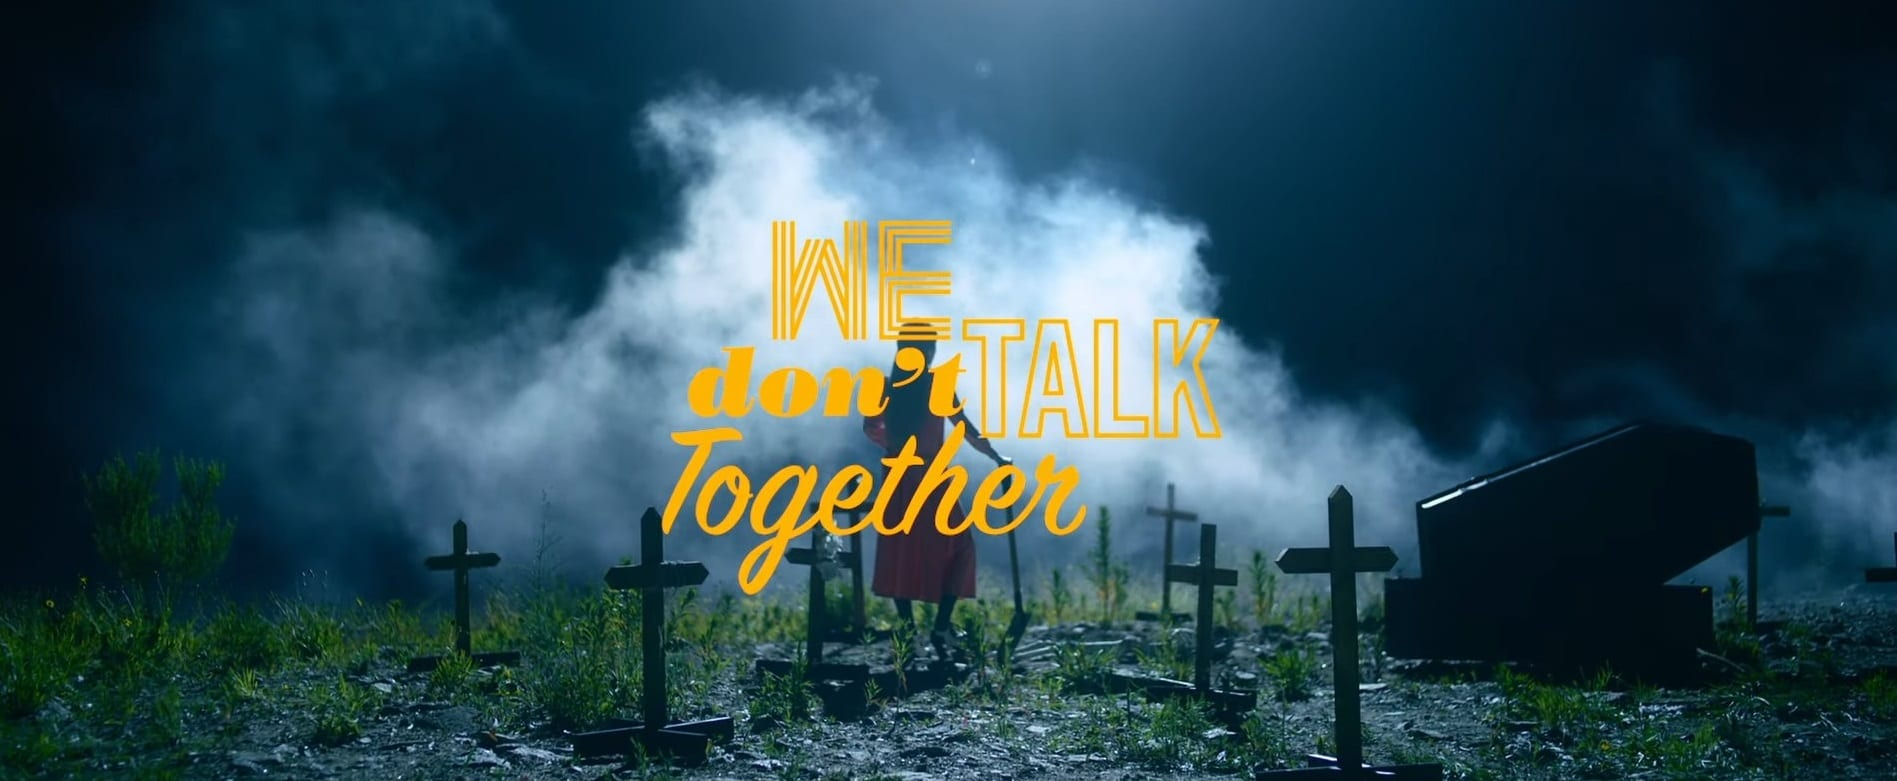 "WATCH: Heize Has A Sad Tale Of Love In ""We Don't Talk Together"" MV Featuring Giriboy"